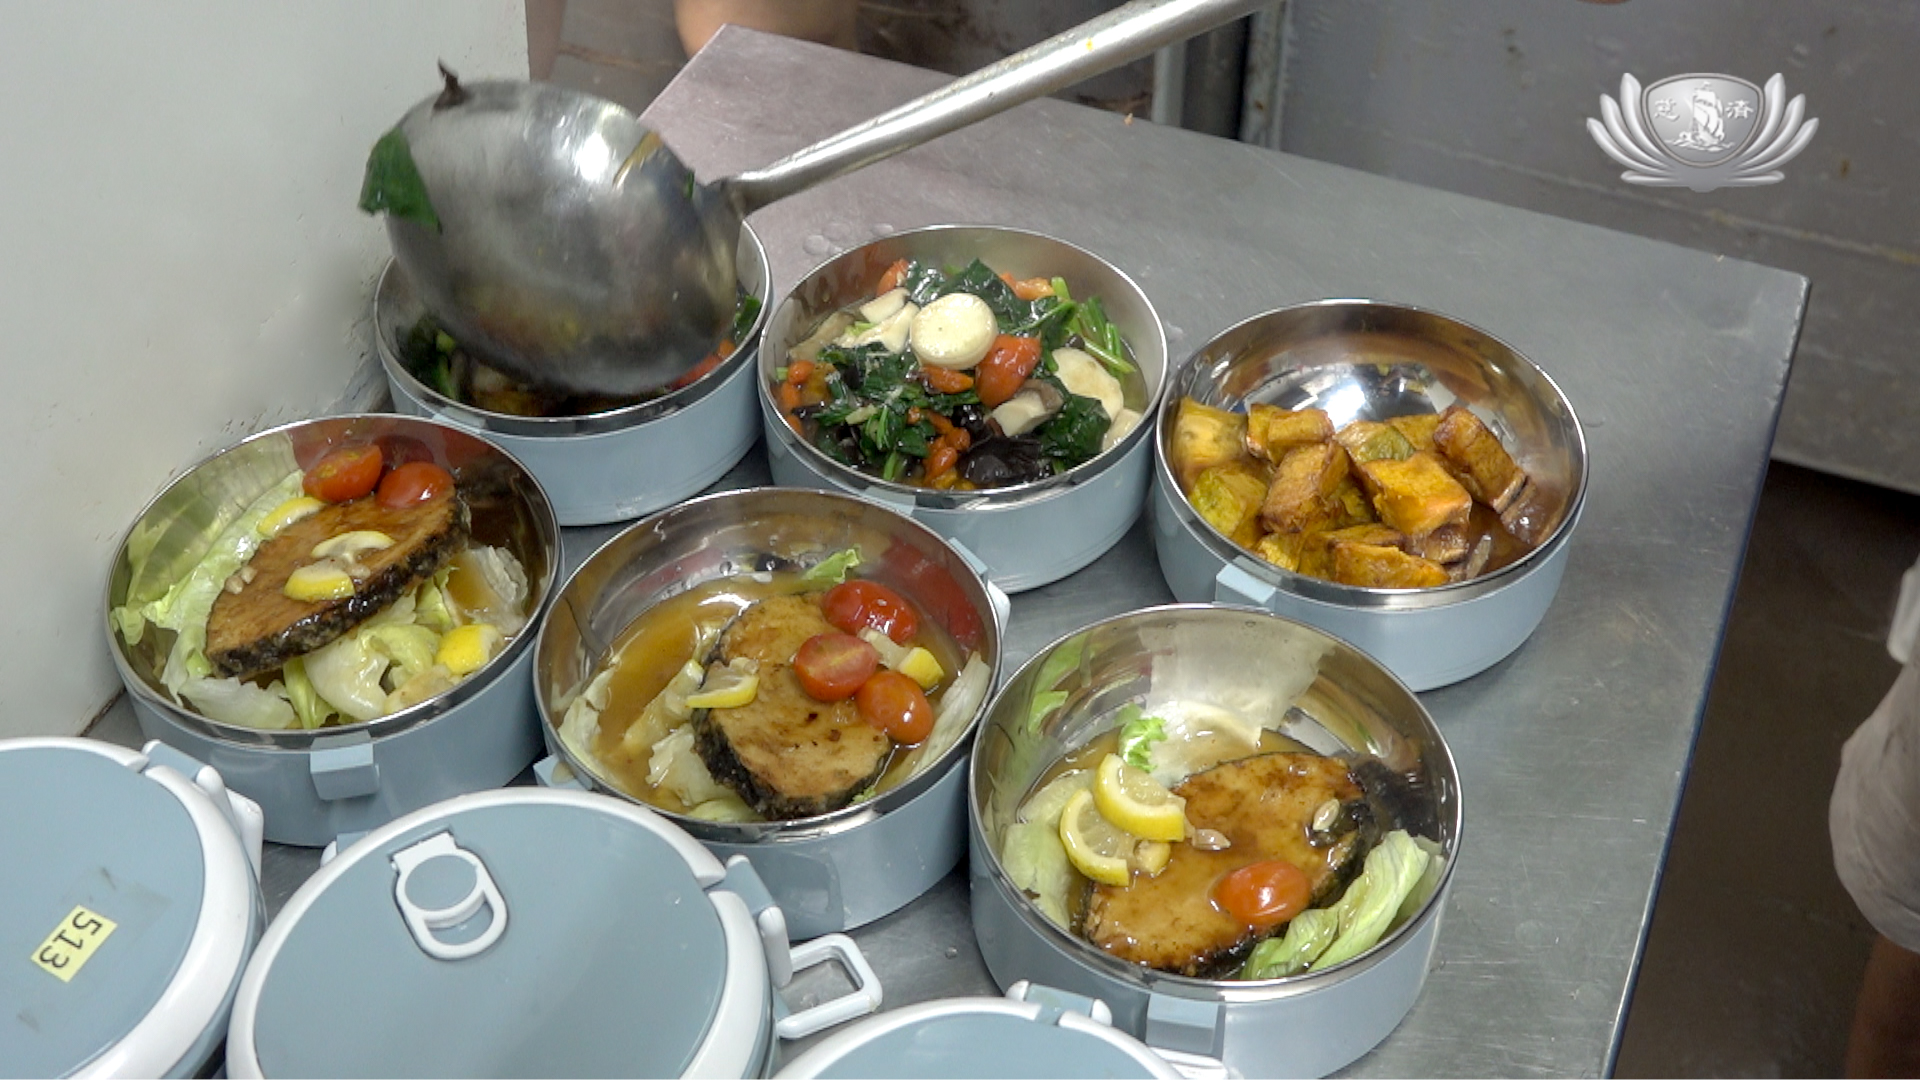 Tzu Chi delivers hearty vegetarian meals to encourage vegetarianism